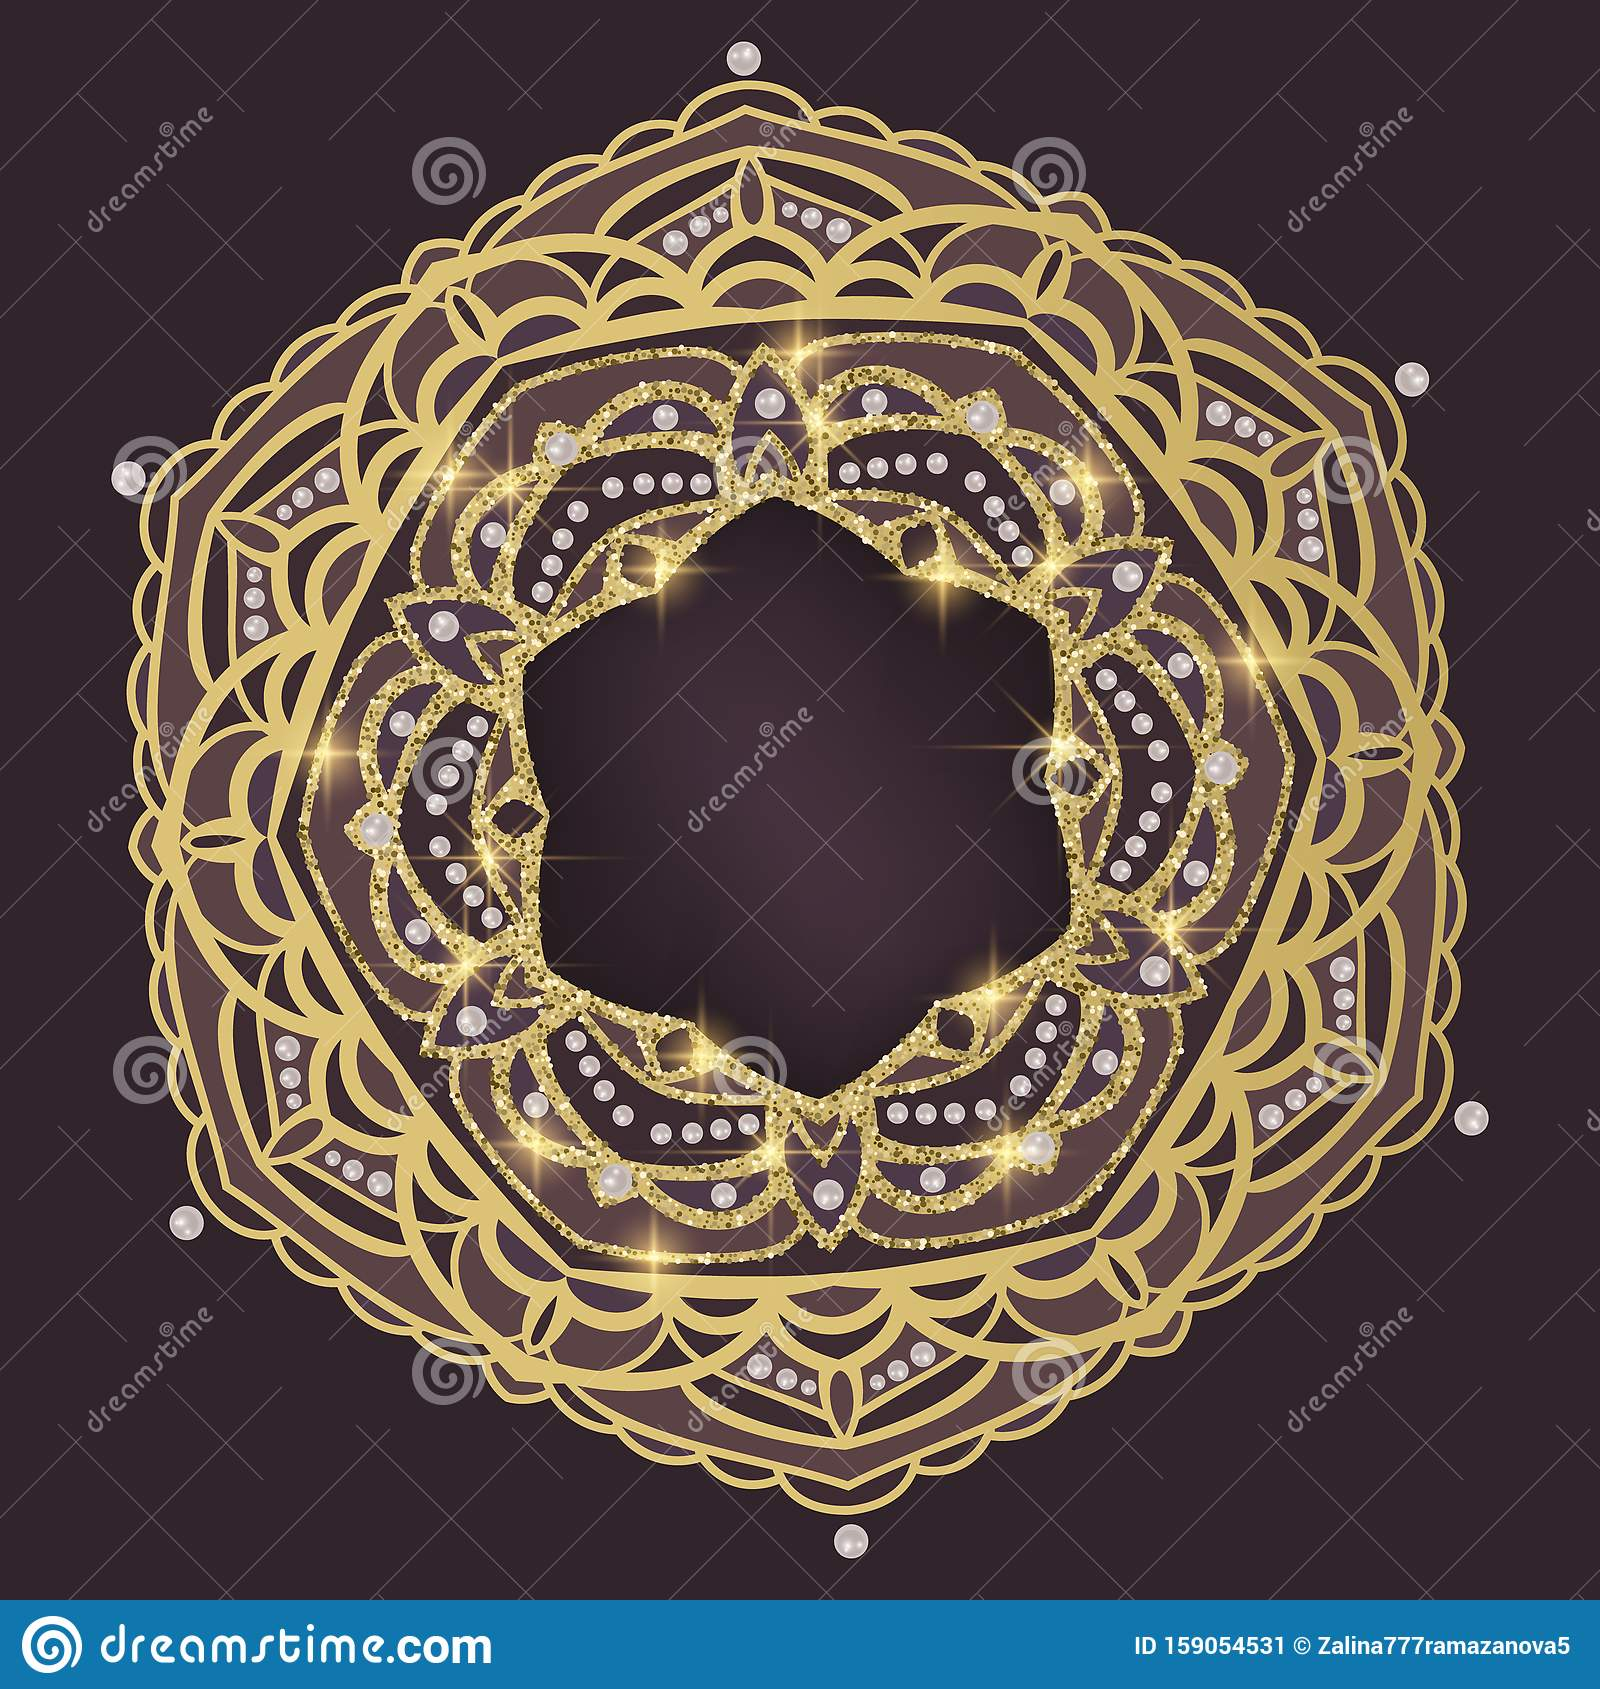 Golden Mandala With Glitter Texture On Dark Background Greeting Card With Space For Text Or Logo Vector Illustration Stock Vector Illustration Of Flower Background 159054531